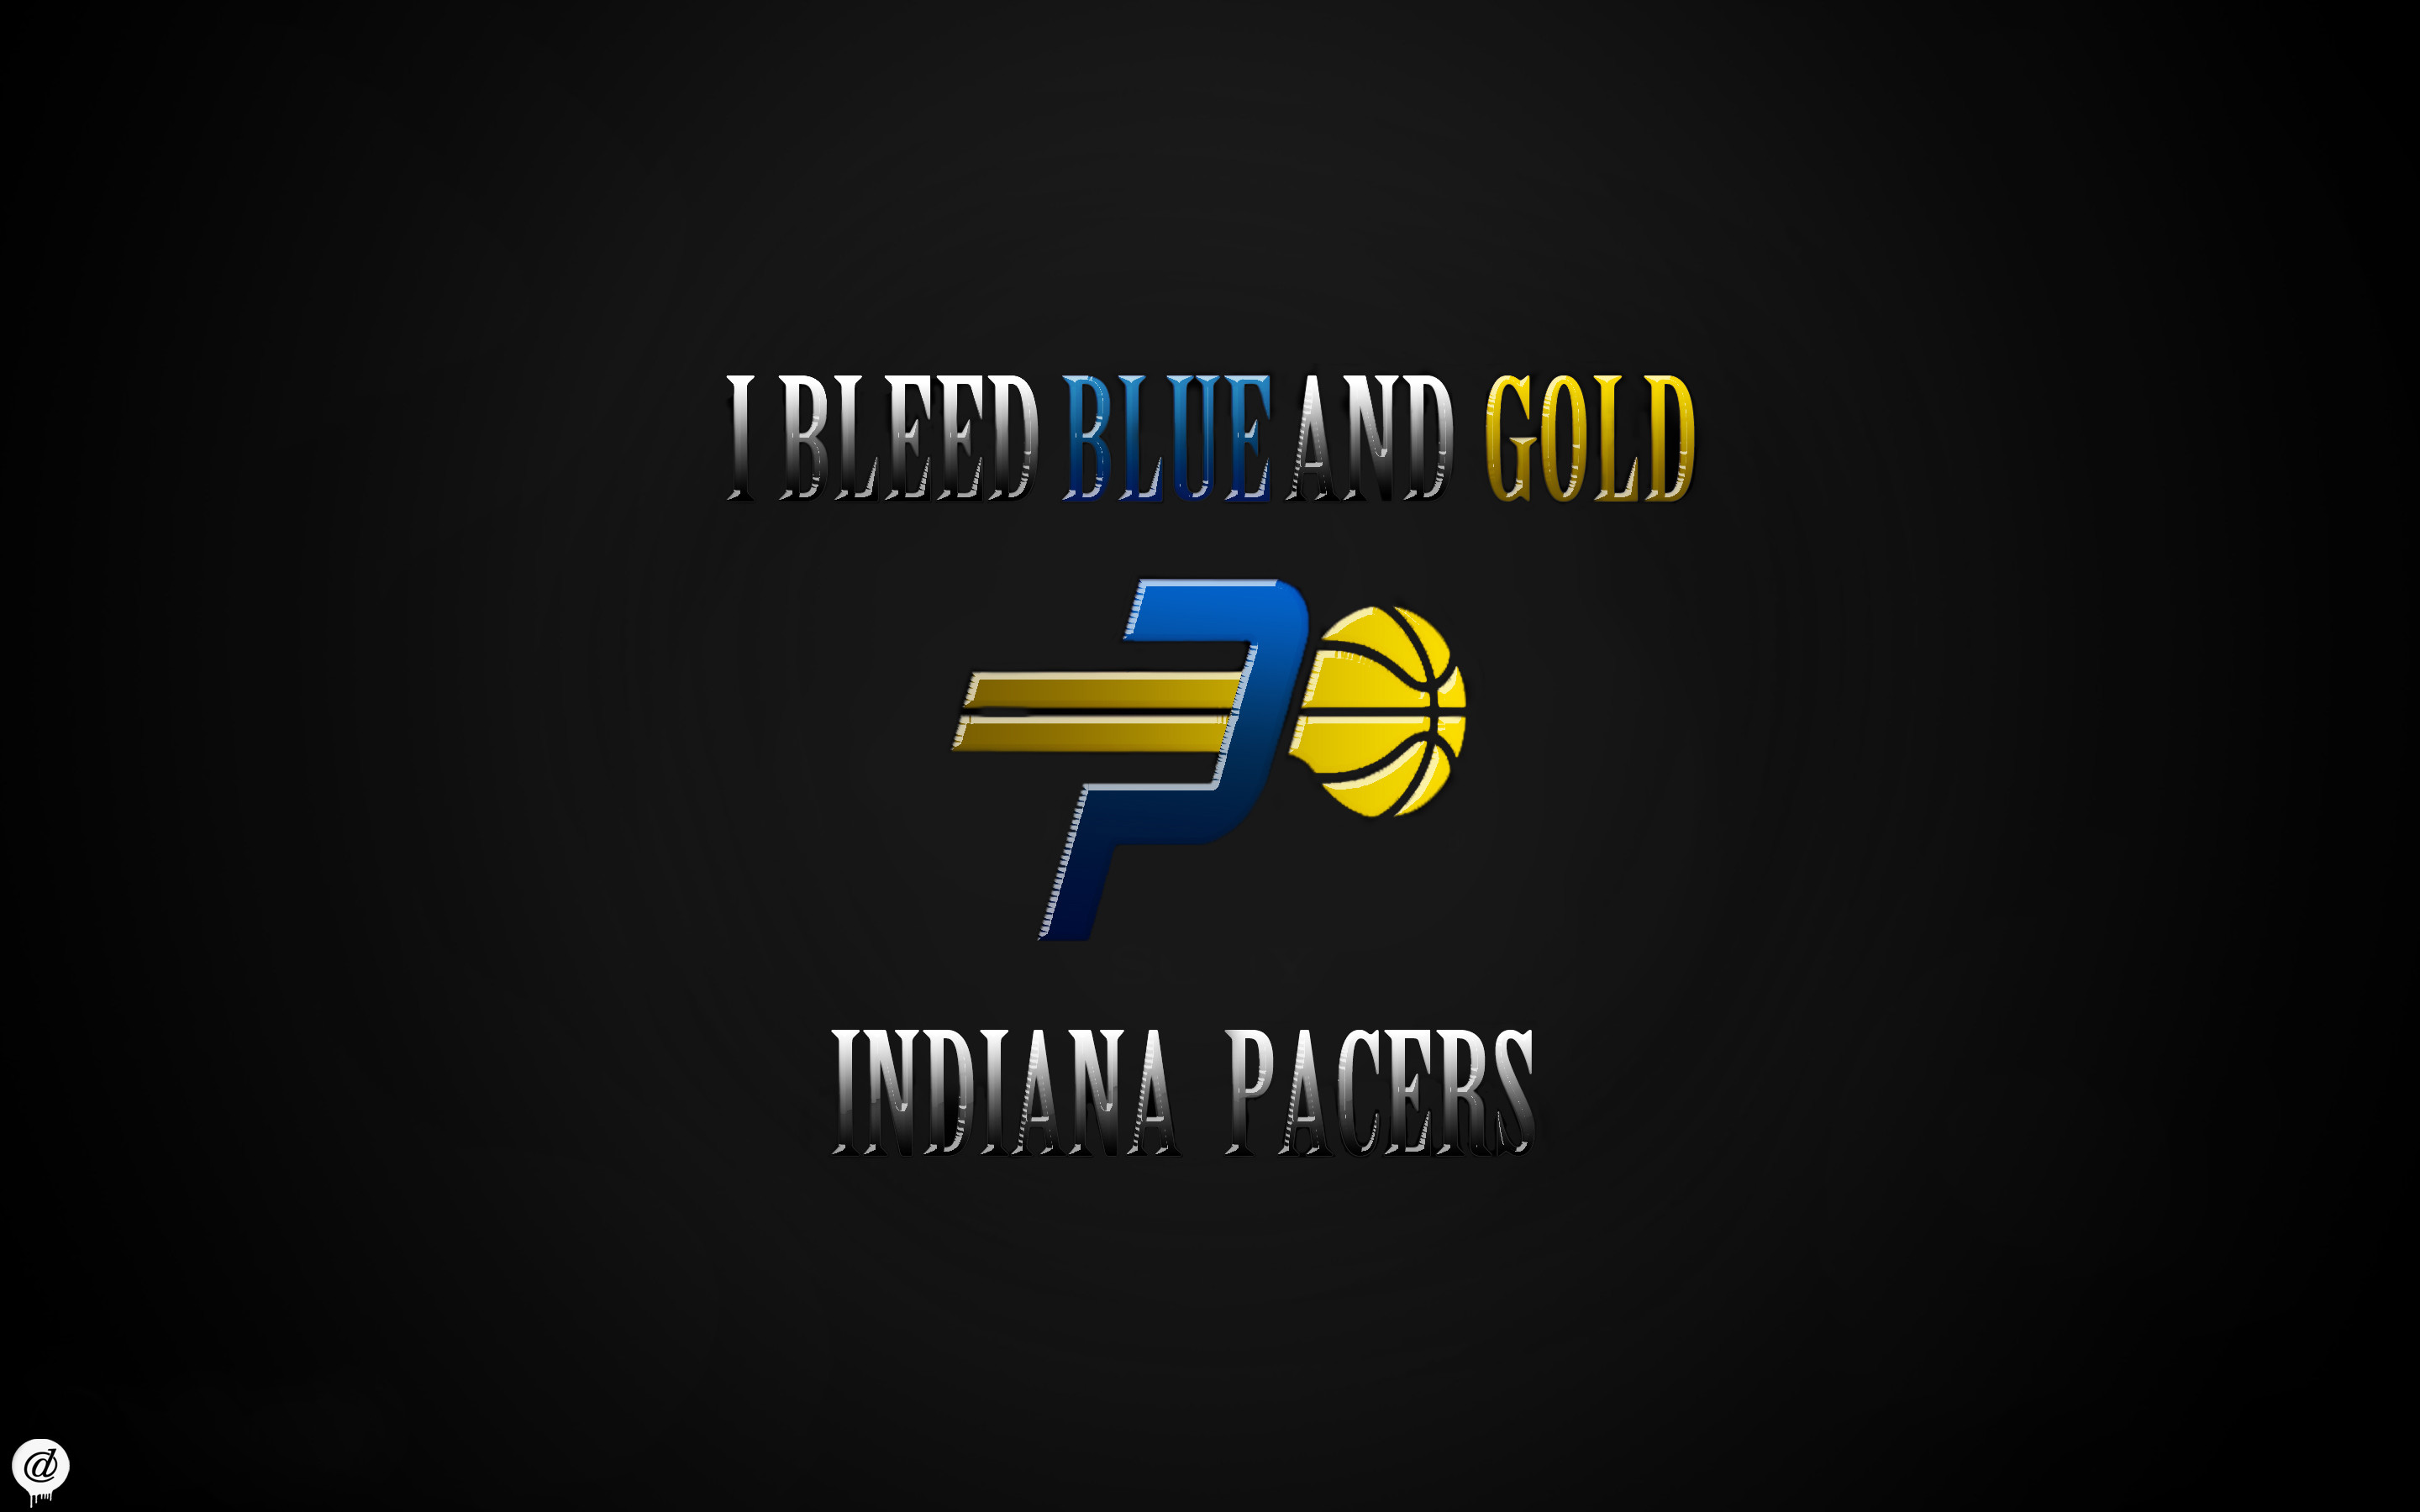 2880x1800 ... Indiana Pacers Wallpaper - I Bleed Blue and Gold by 31ANDONLY